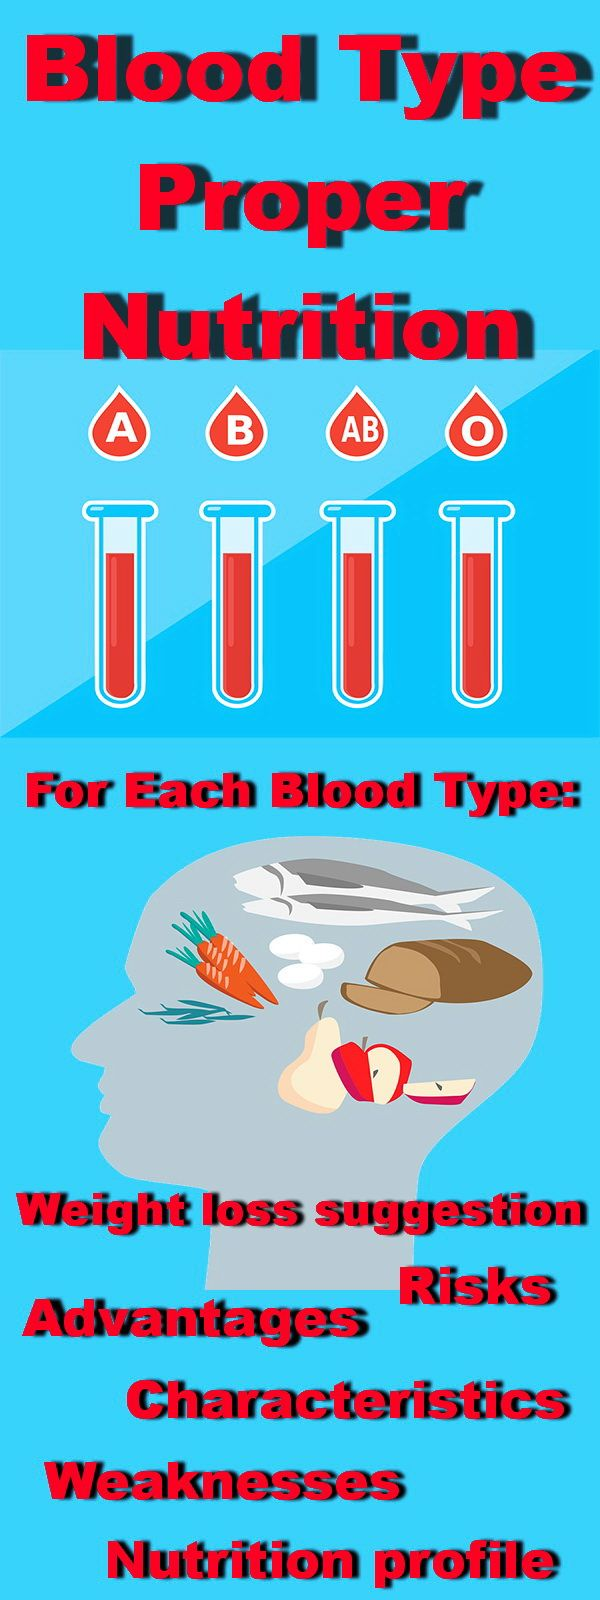 Blood type and proper nutrition